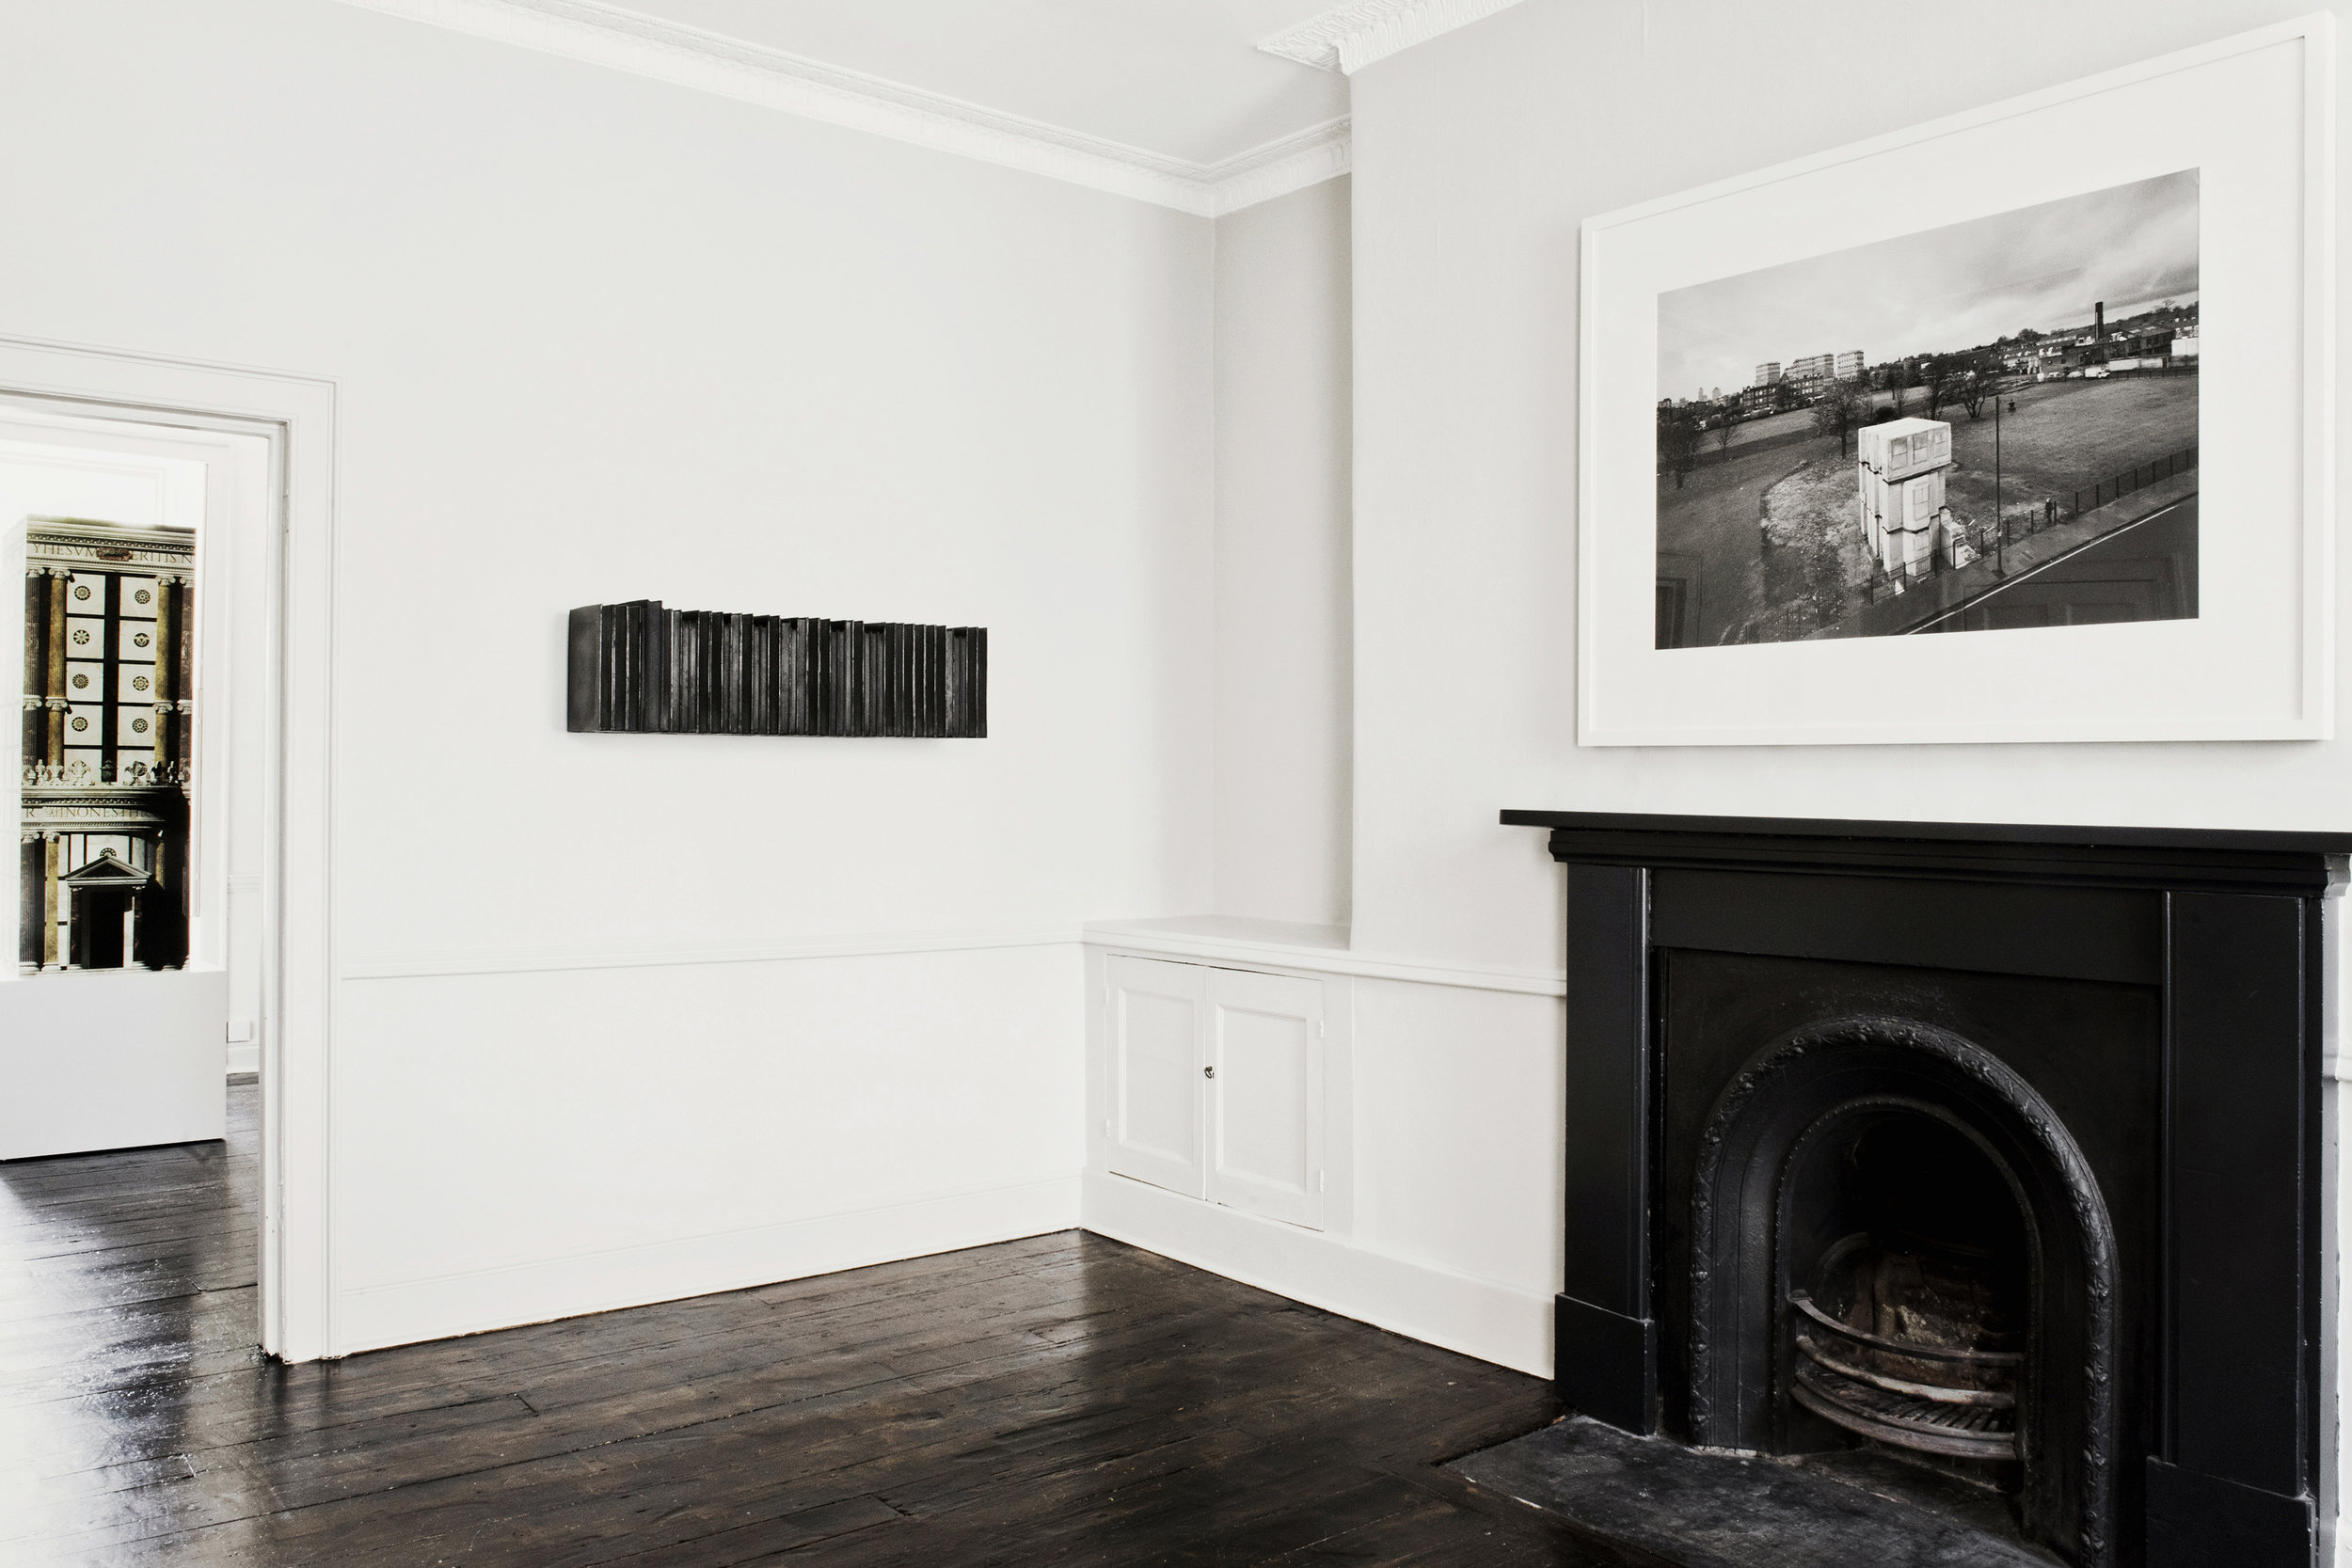 Installation view - Pablo Bronstein, Rachel Whiteread